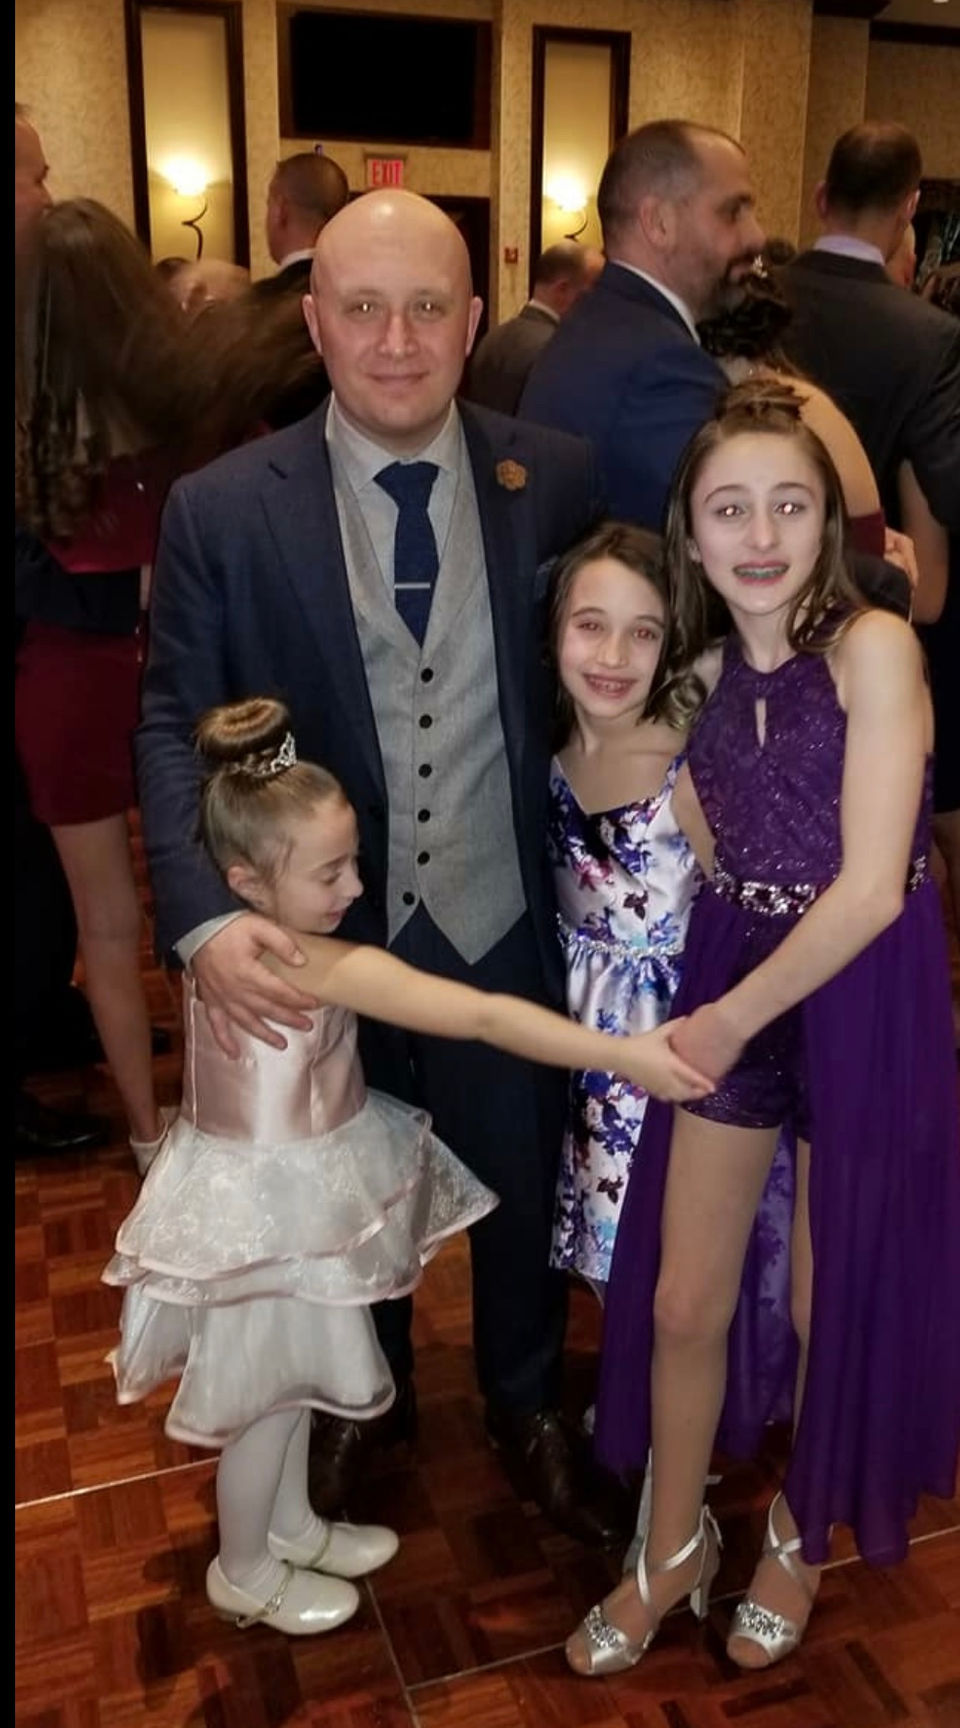 Staten Island Nightlife 300 Attend Olgc Father Daughter Dance